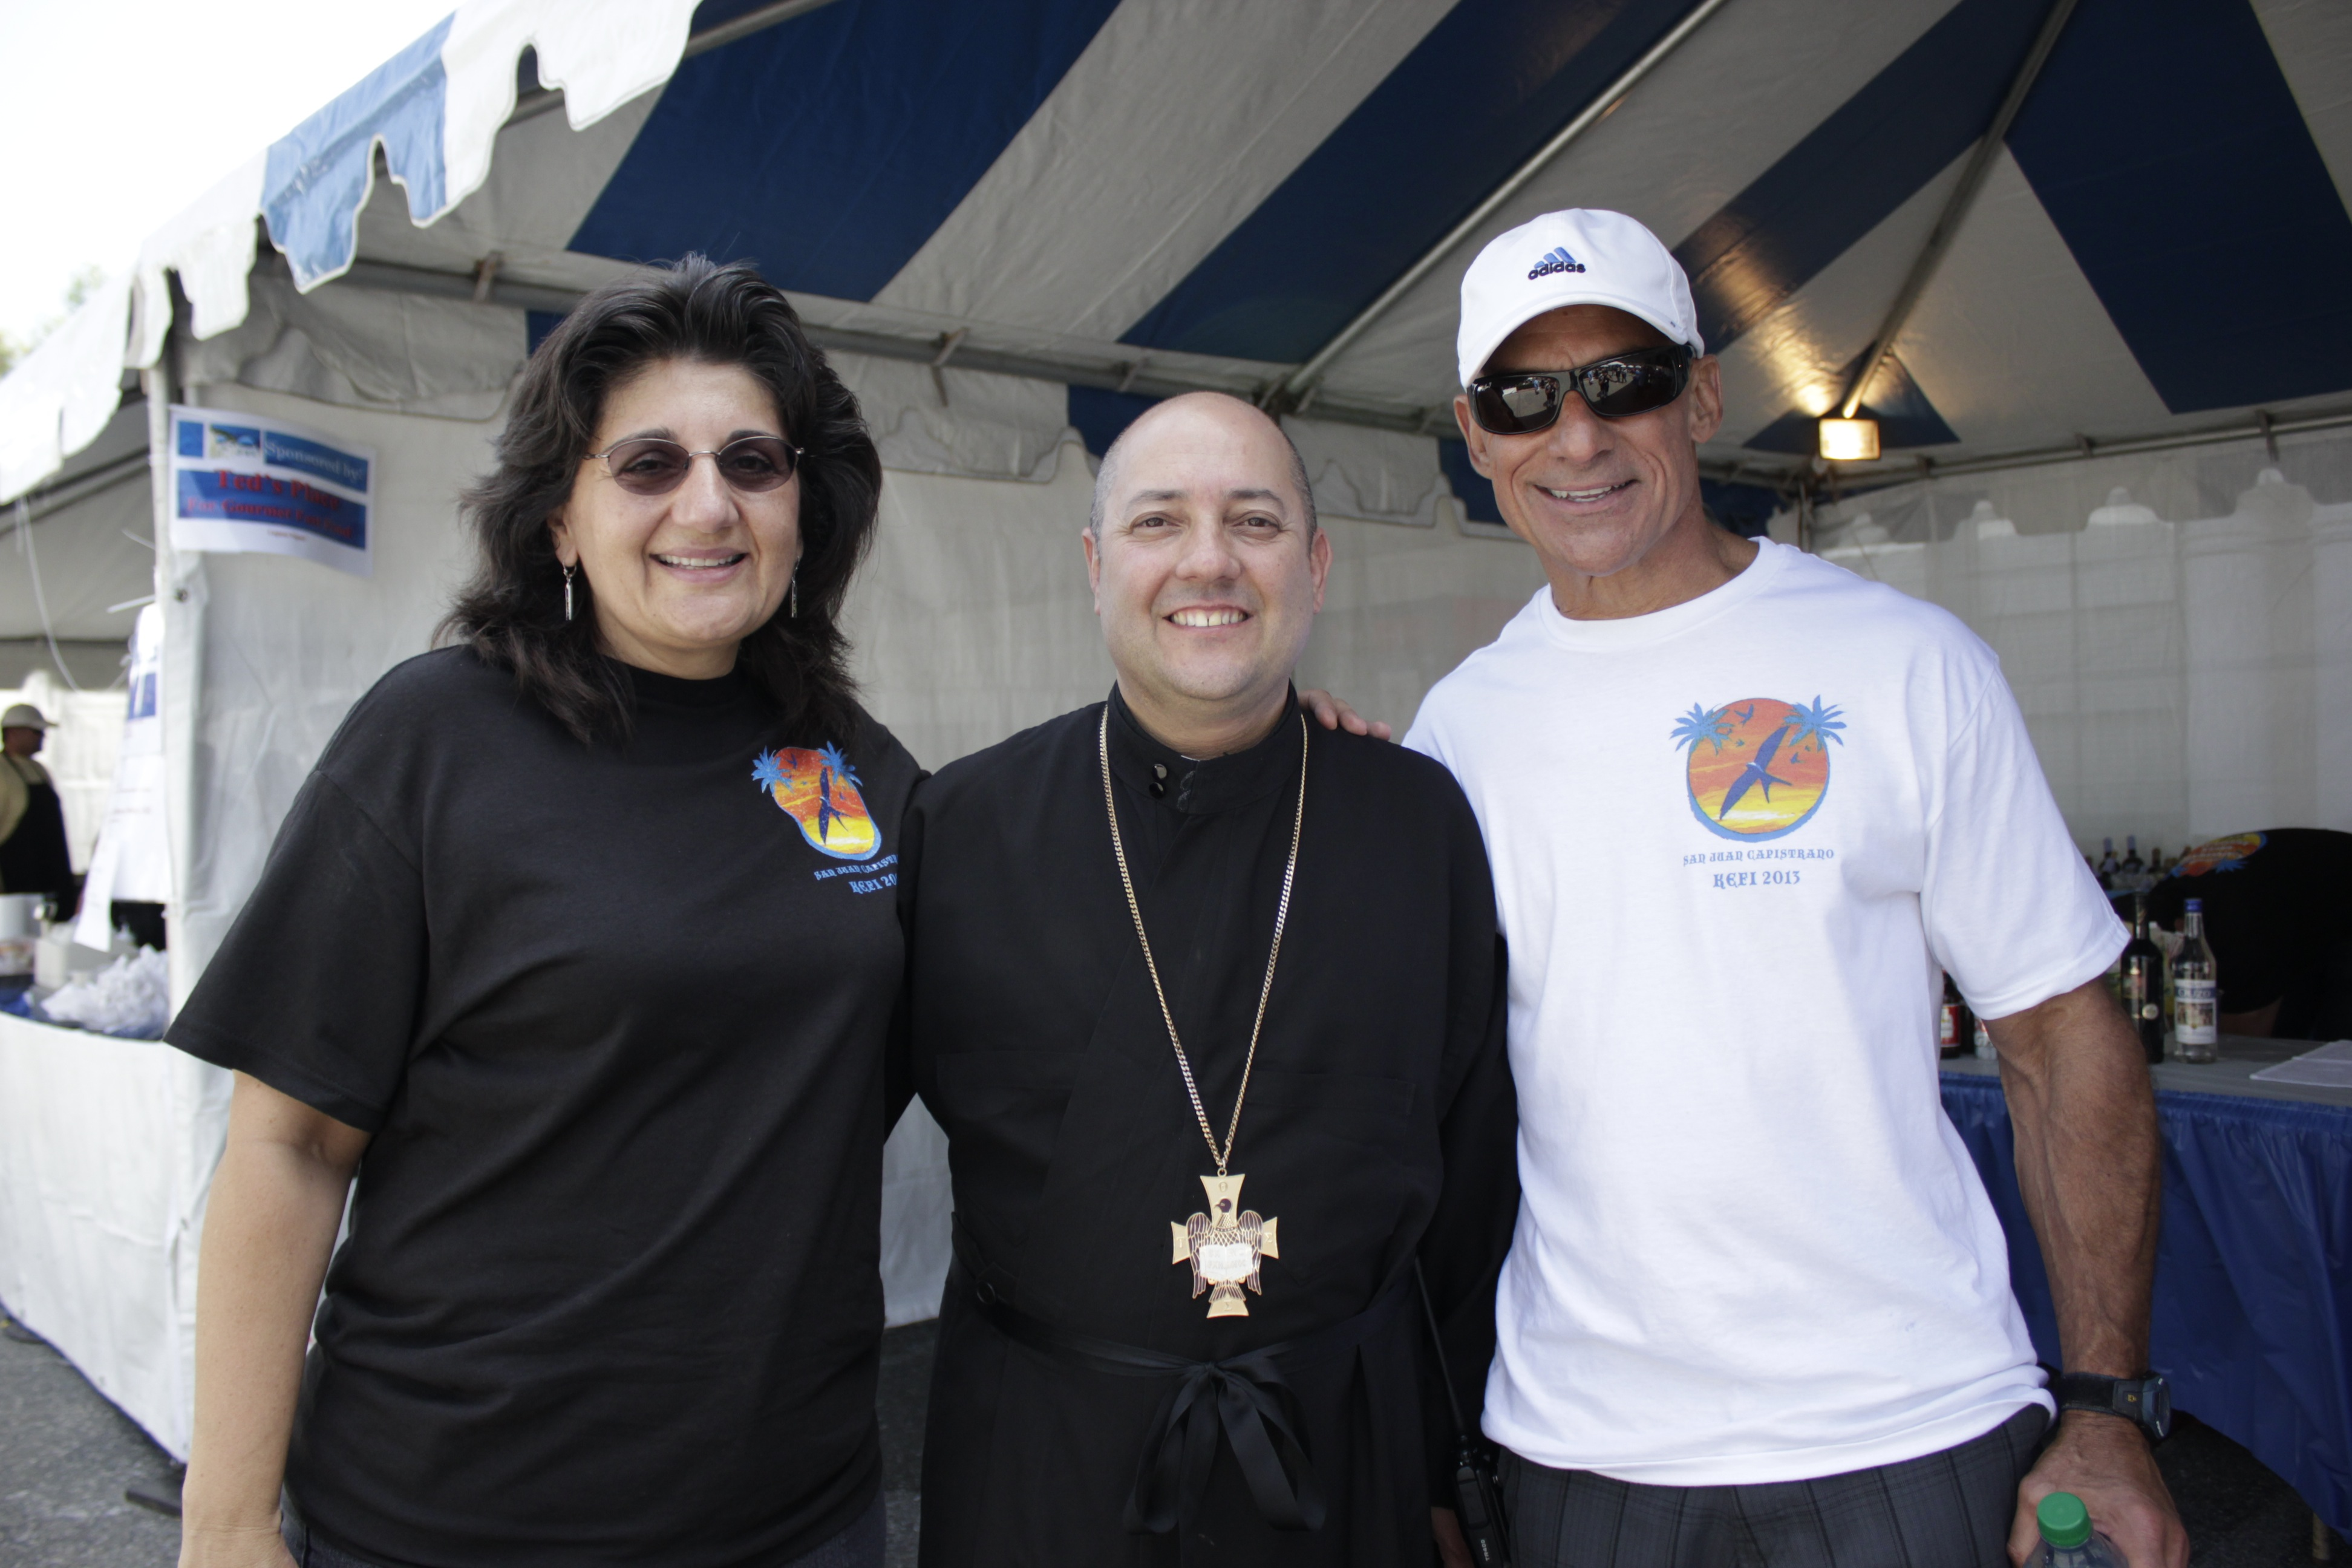 (From L to R) Irene Basadakis, Fr. Bill Tragus and Denny Papilion. Photo by Brian Park